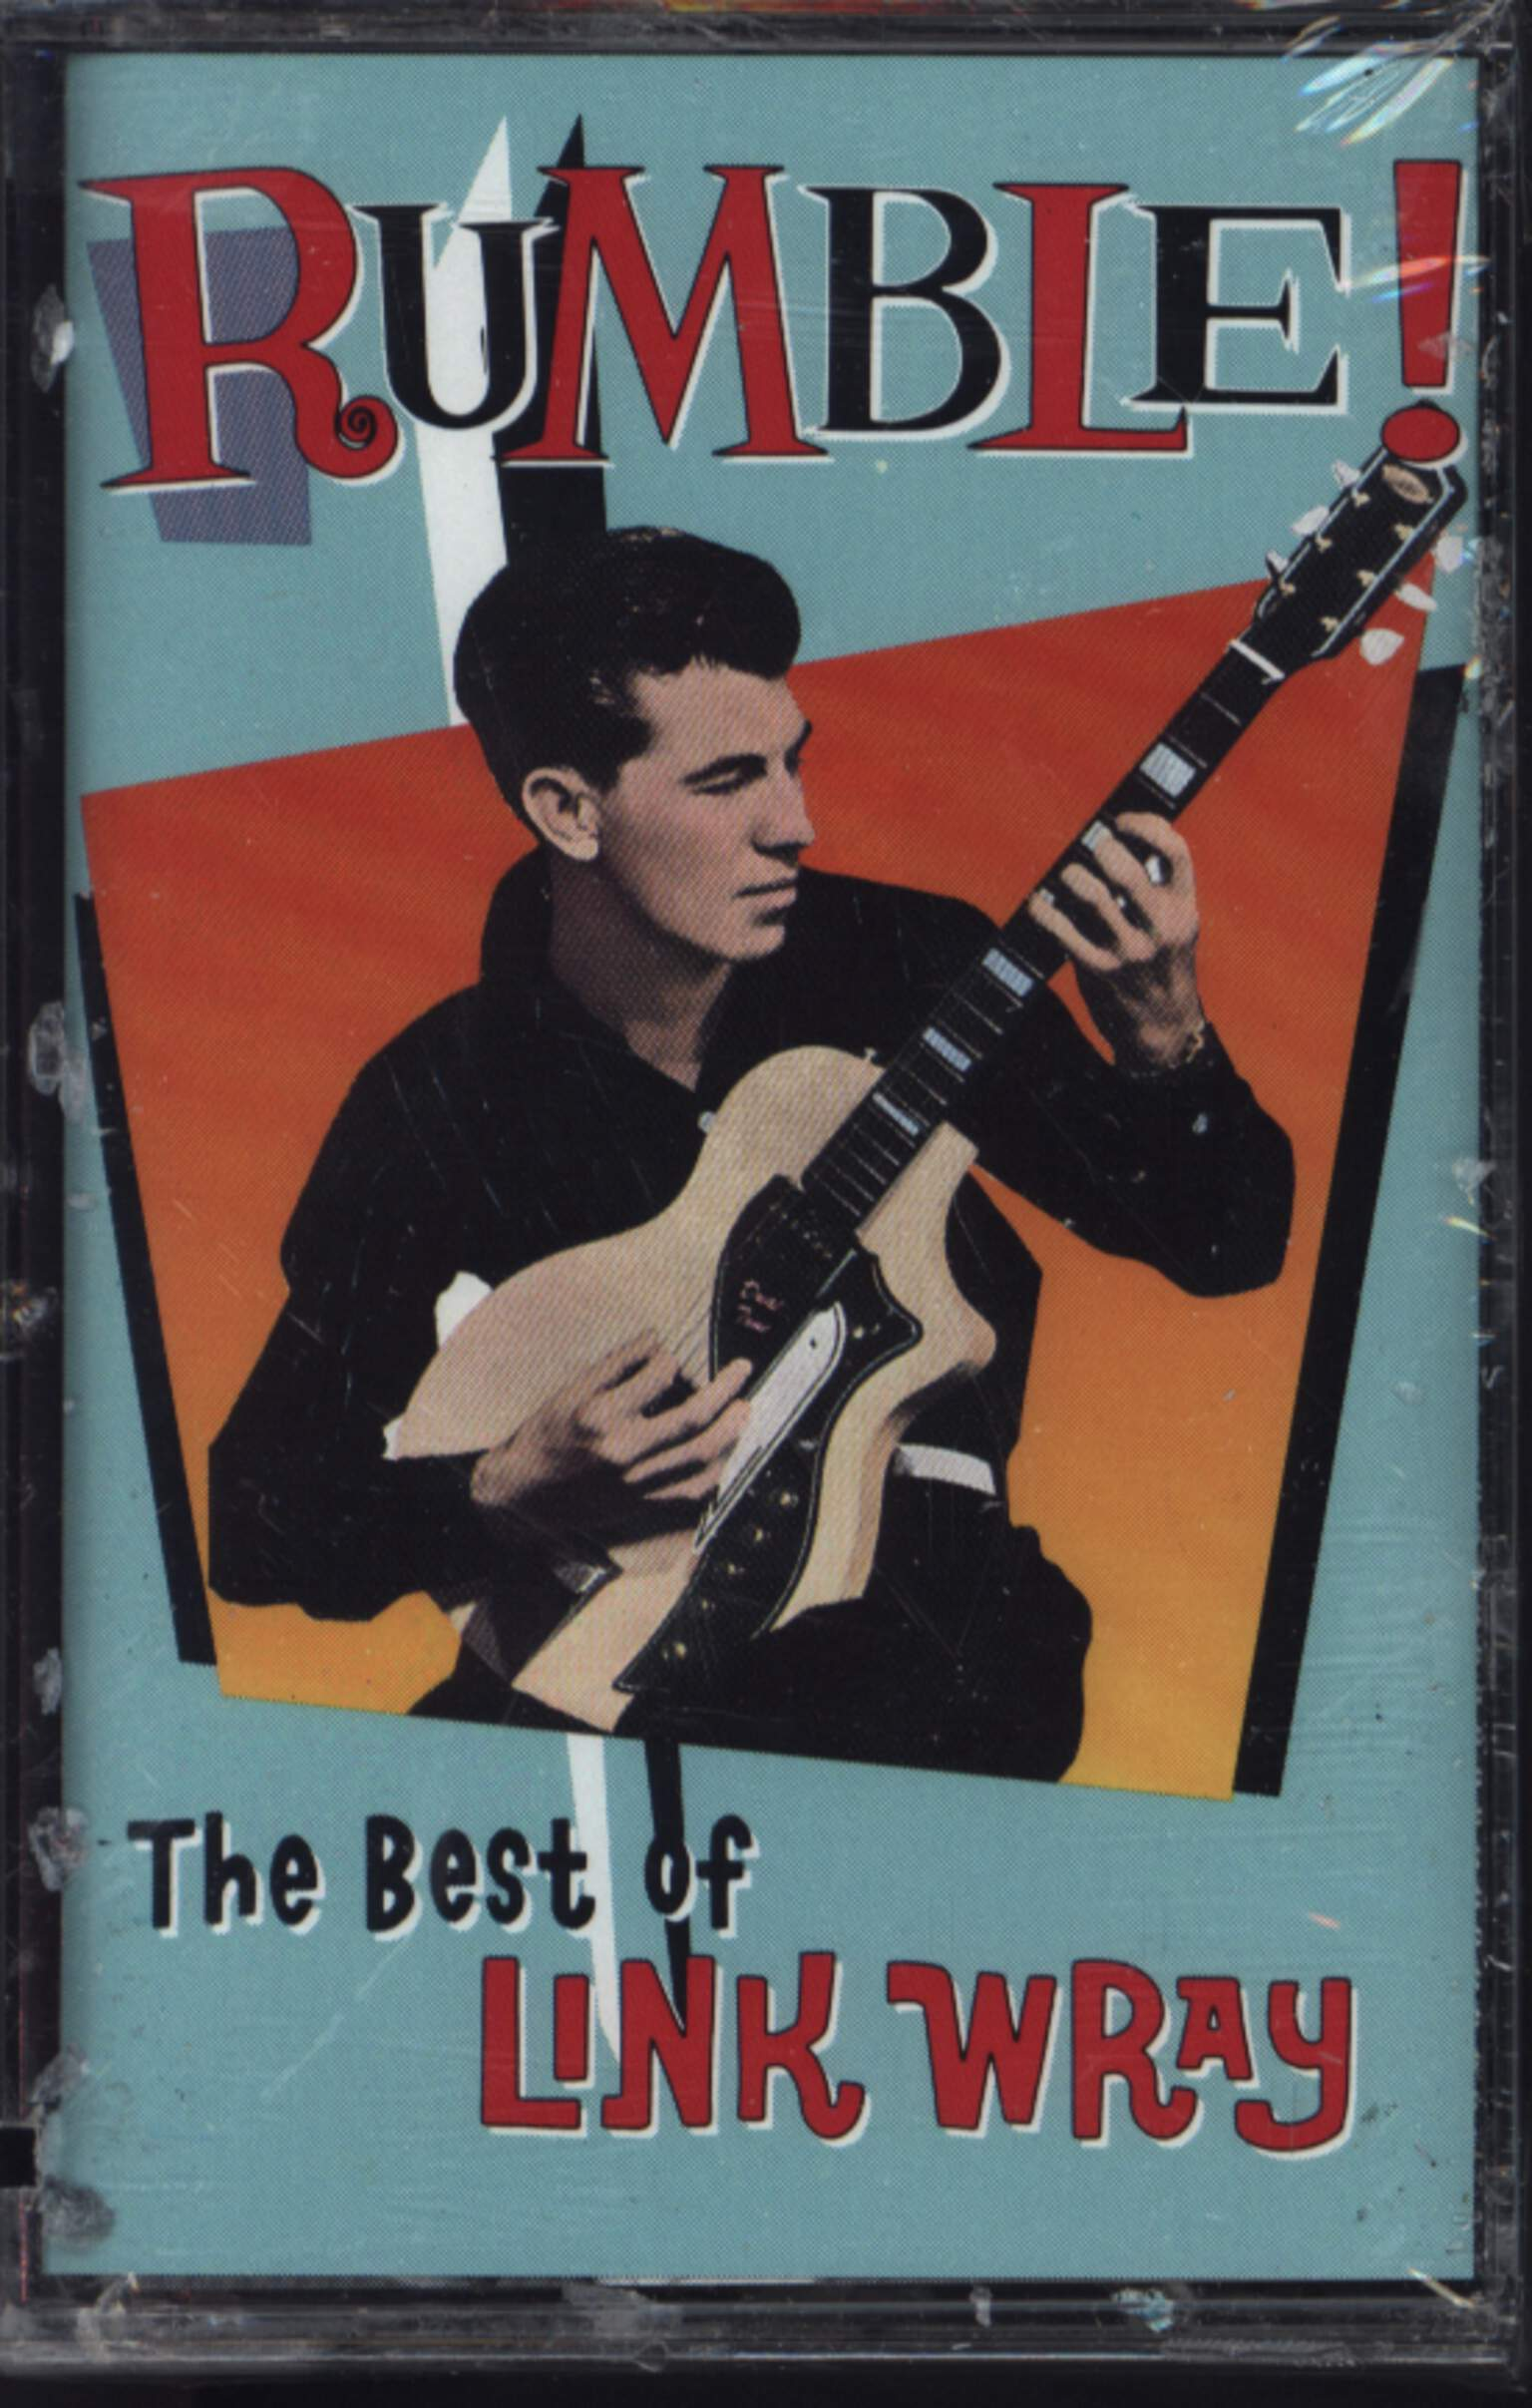 Link Wray: Rumble! The Best Of Link Wray, 1×Tape